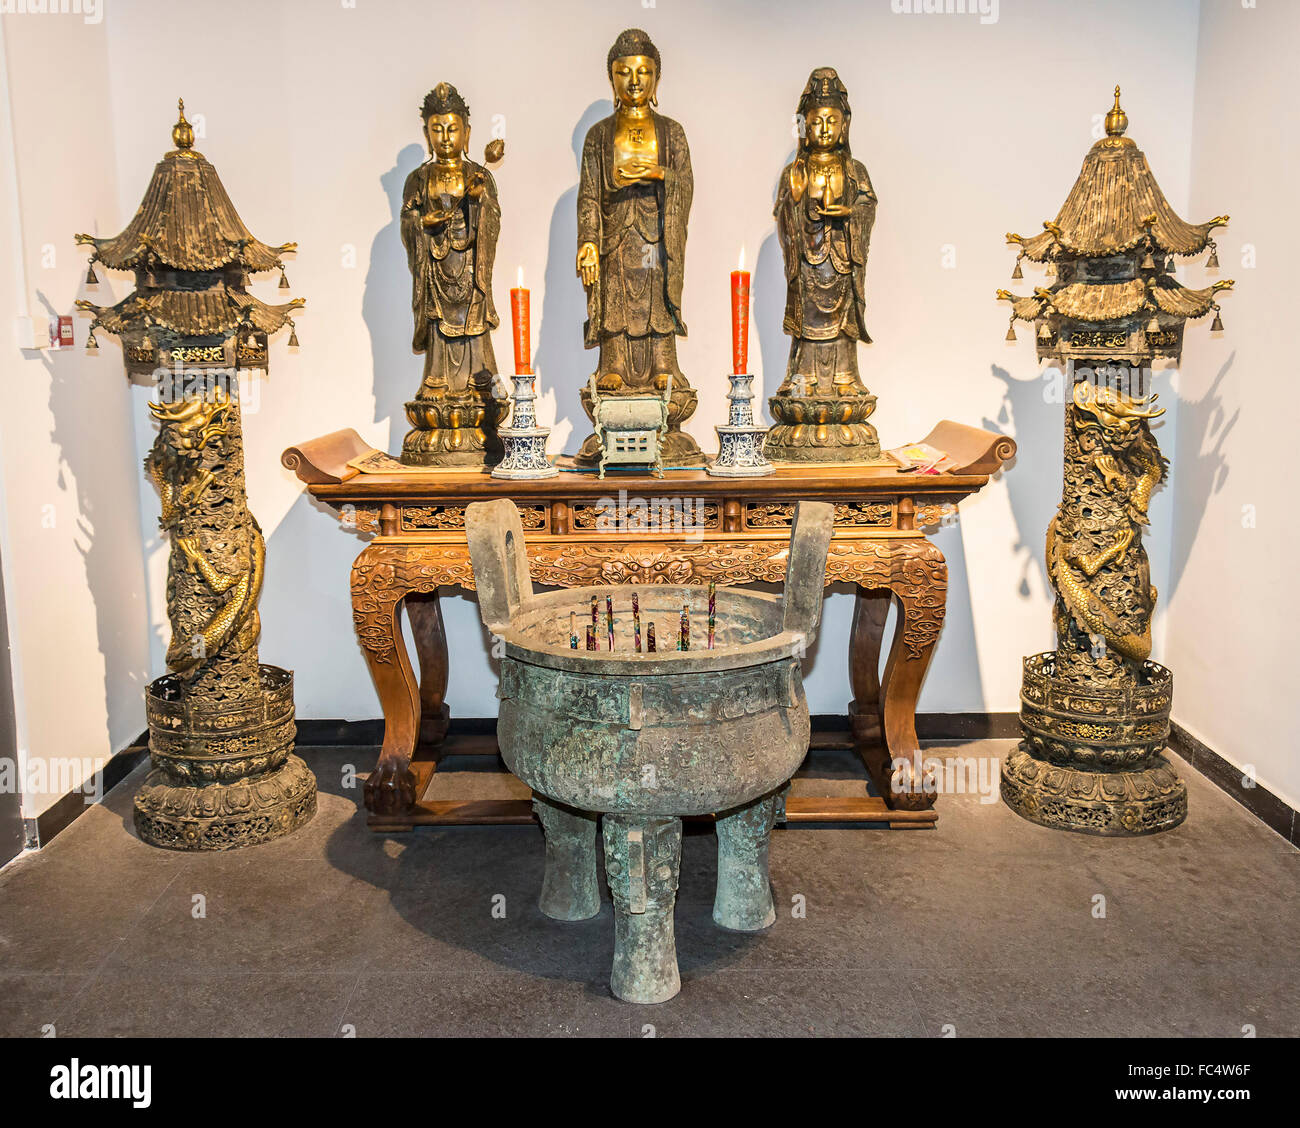 Buddhist Shrine With Rosewood Table, Statues And Incense Bowl. On Disiplay  At Zhen Qi Hui Art Center In Hangzhou, China,